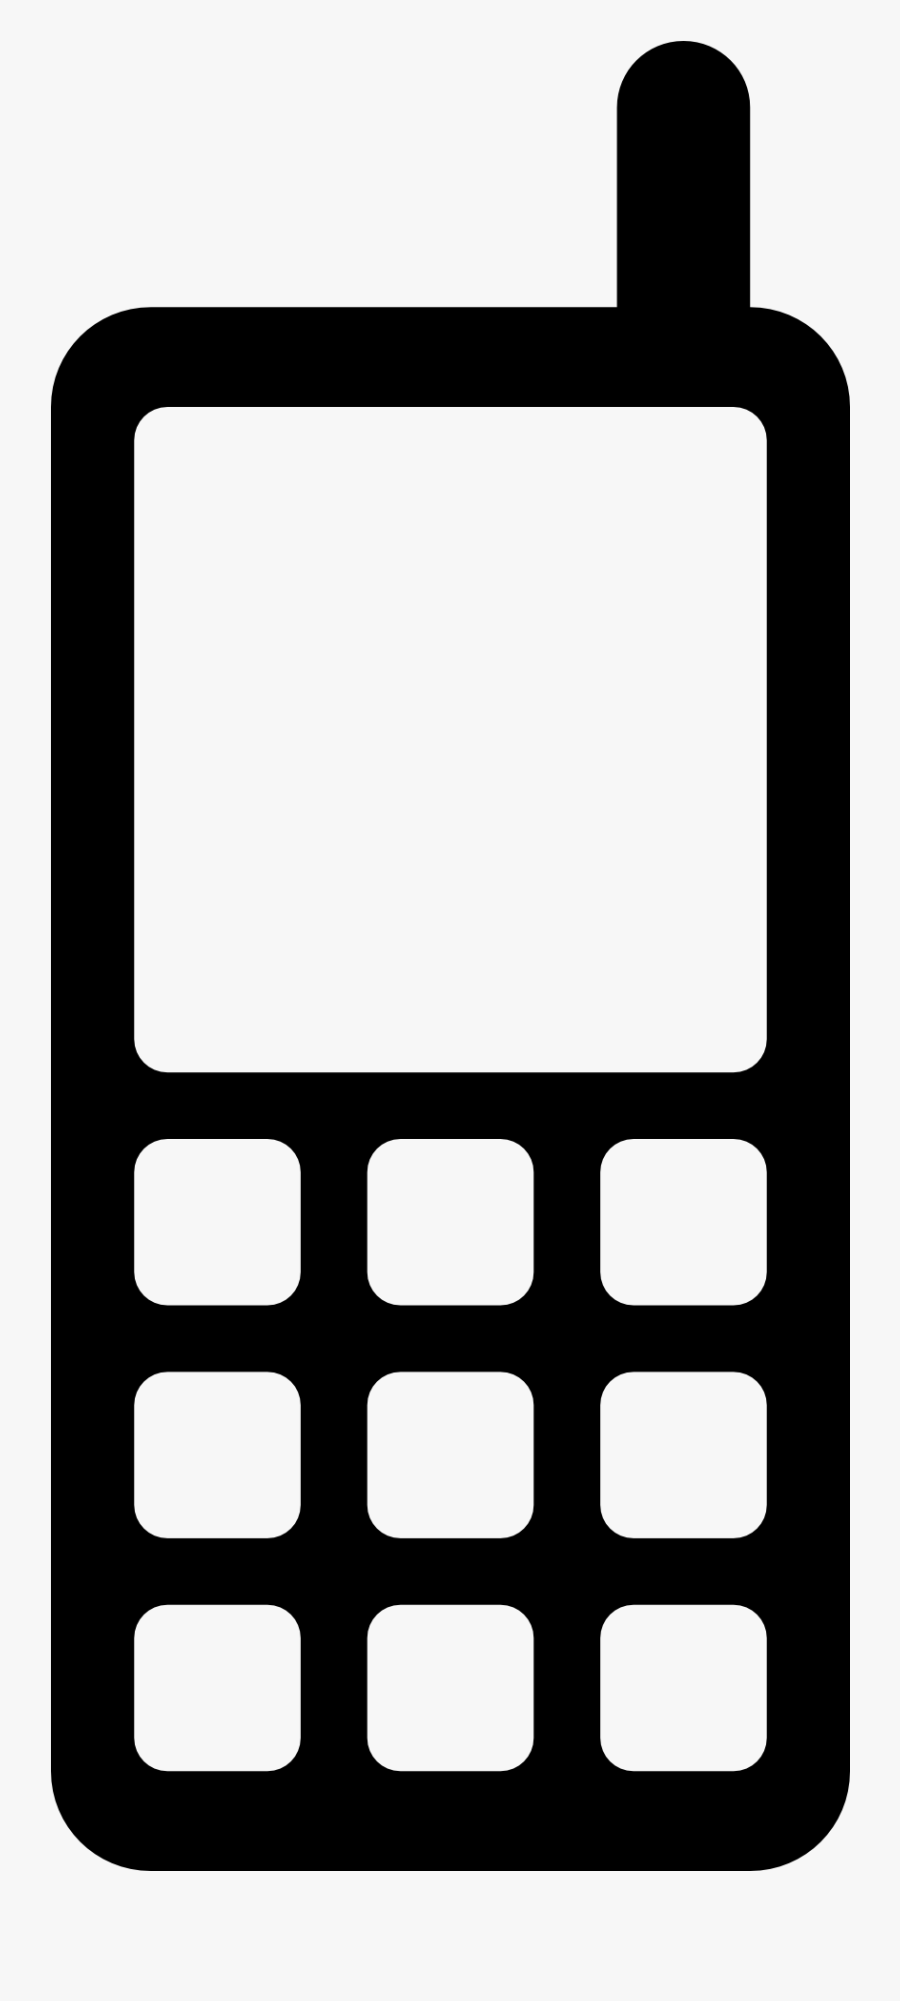 Mobile Icon Clipart Computer Icons Clip Art - Mobile Sign For Email Signature, Transparent Clipart